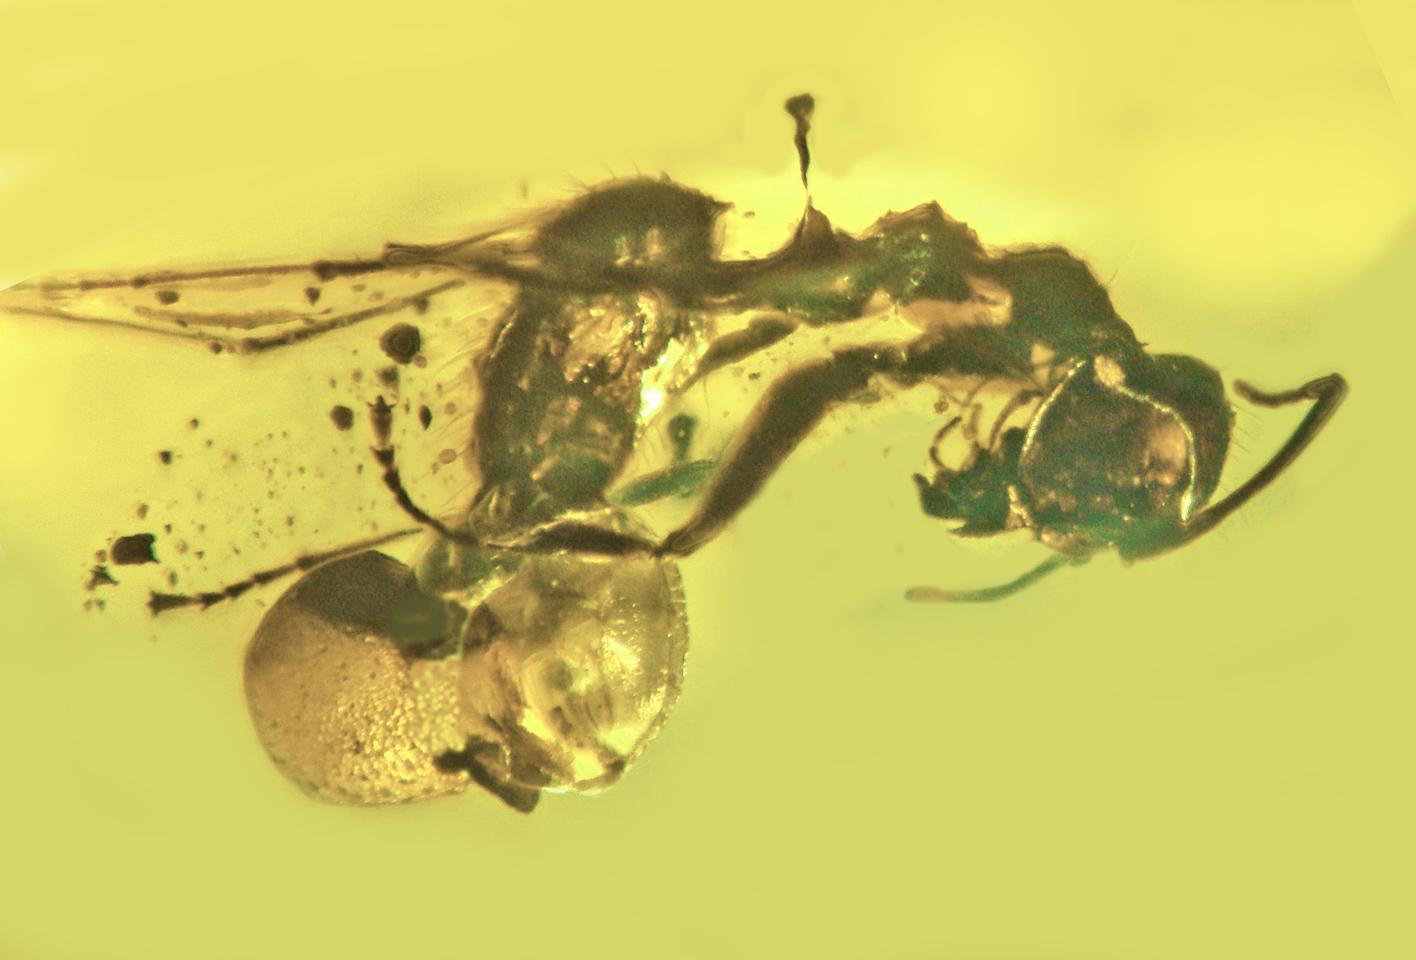 In a piece of 50-million-year old amber, researchers have discovered a novel species of parasitic fungus that preys on ants